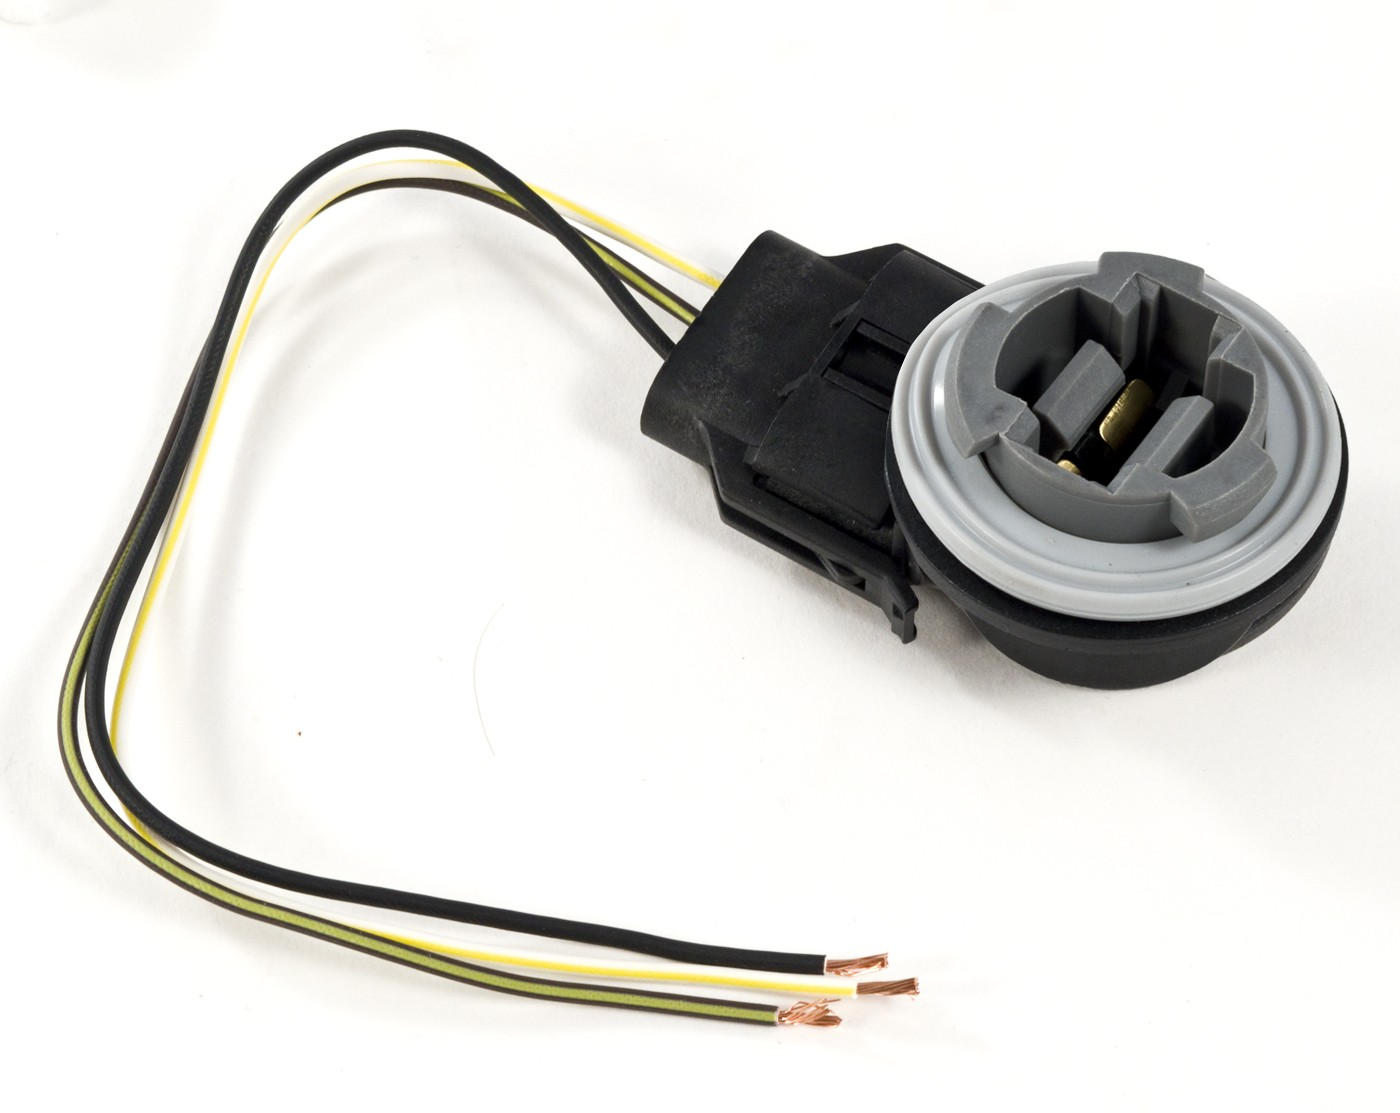 1994 mustang wiring harness 1994 1998 mustang or cobra front parking turn signal 3157 light  1994 1998 mustang or cobra front